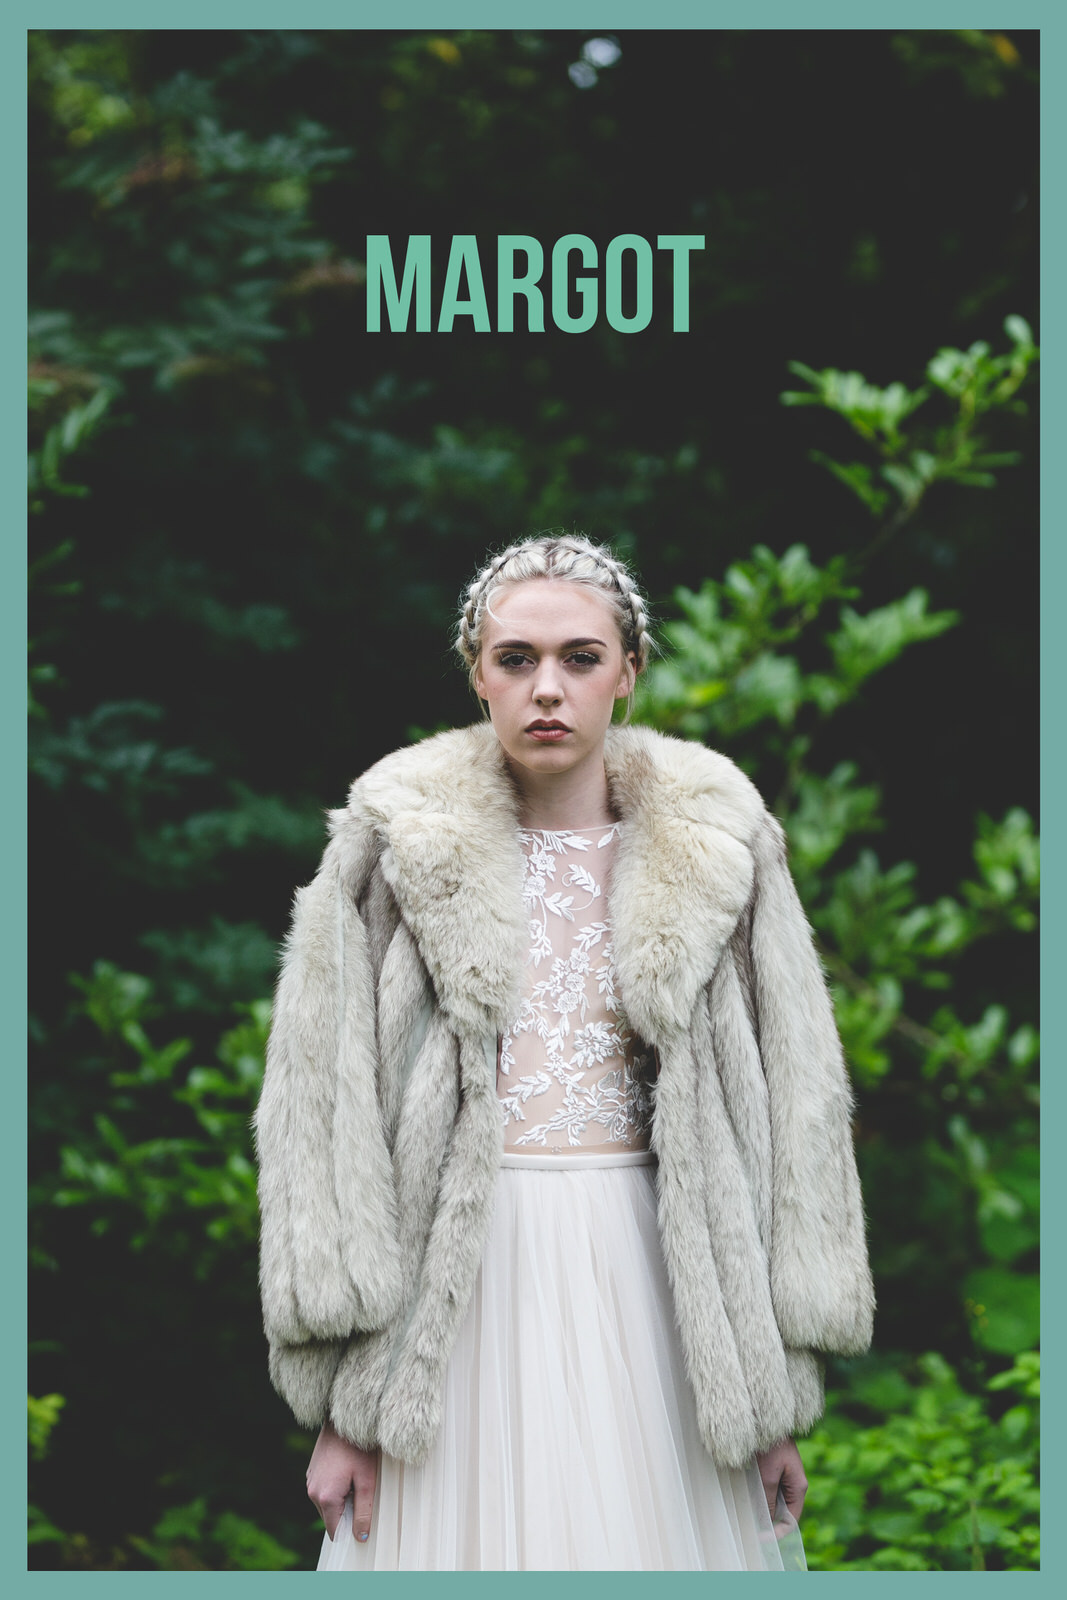 Margot styled bride from the royal tenenbaums